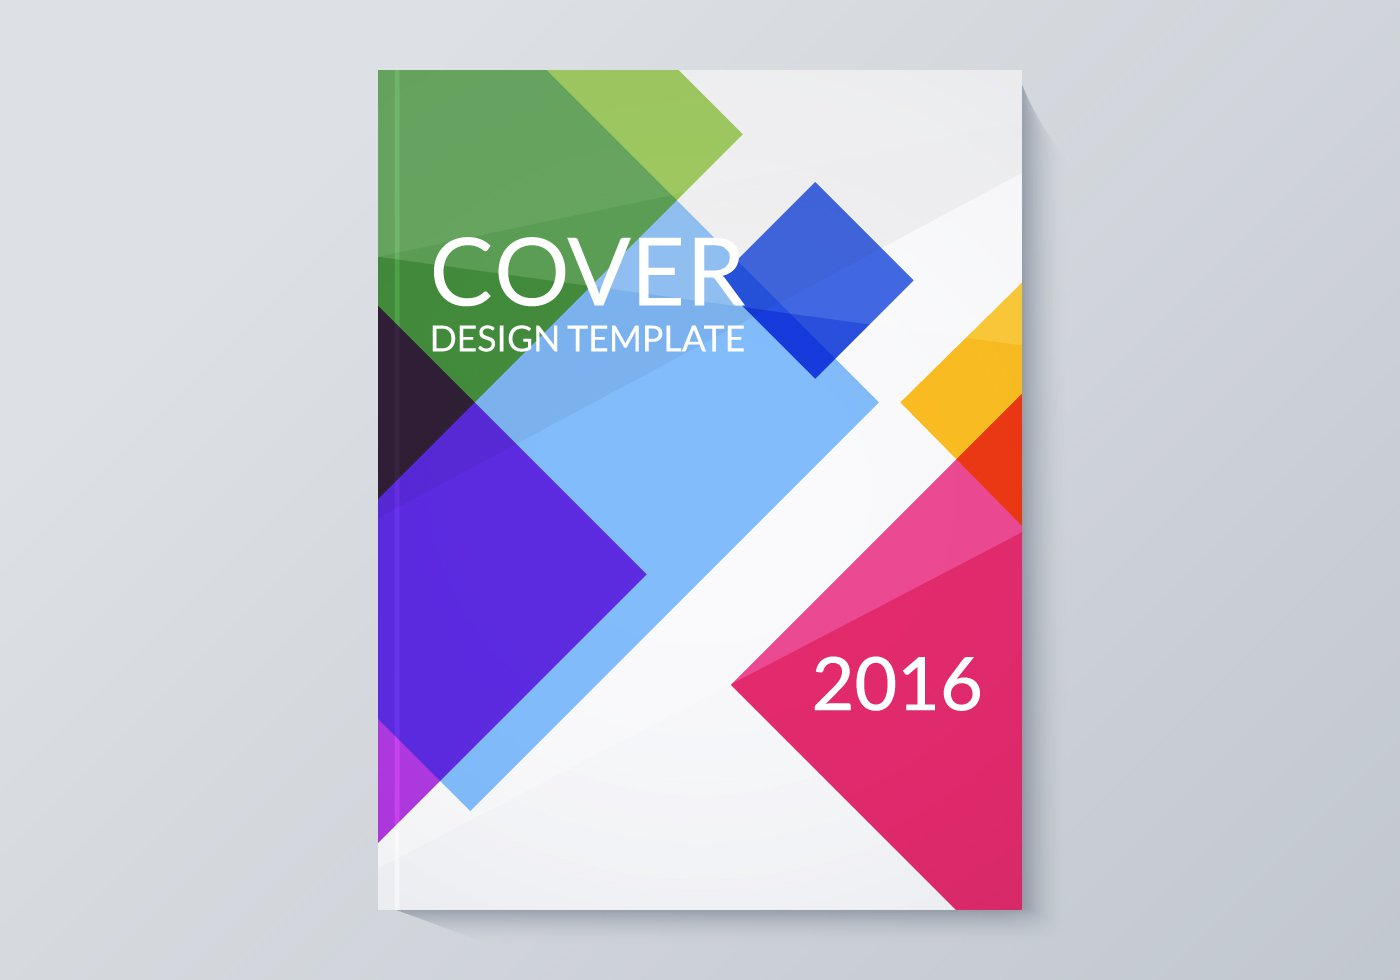 15 Graphic Design Cover Templates Images Graphic Design